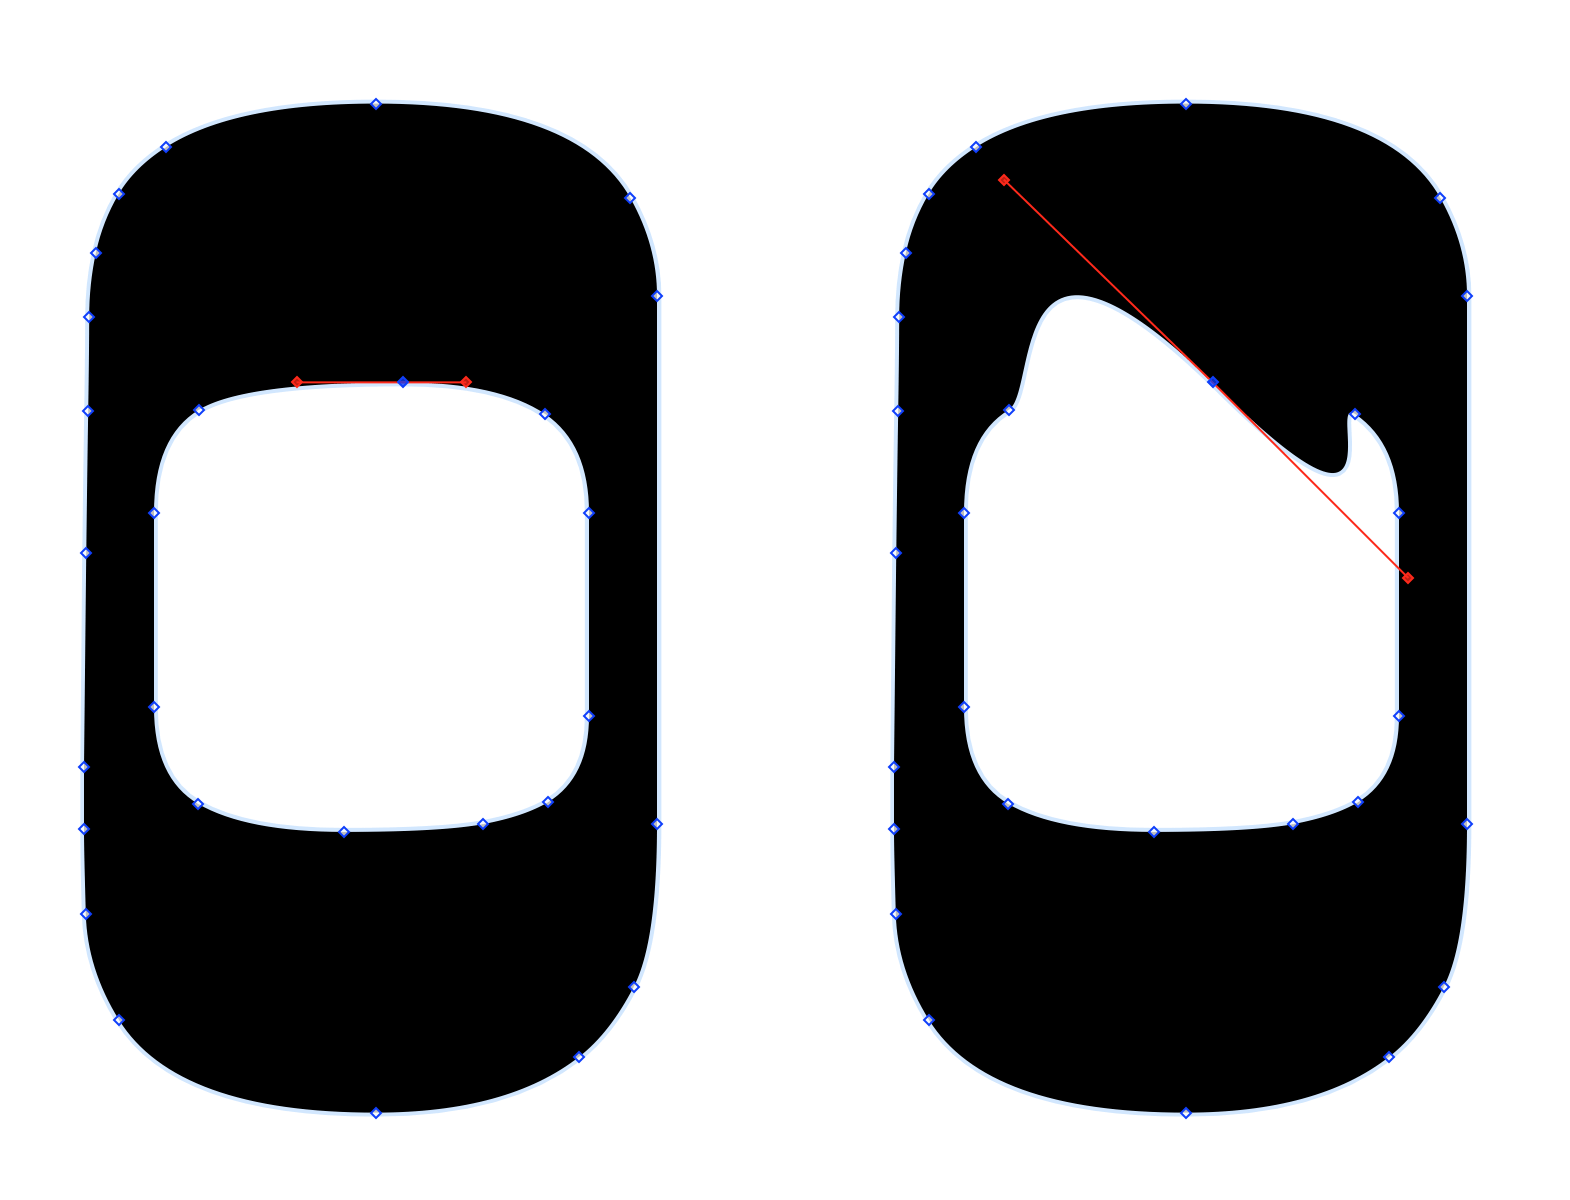 This shows two Oh characters side by side. The Oh on the left has a vector point selected along the top-inside of the shape. The Oh on the right shows that same Oh character after changing the positions of the Bezier curve's control handles.